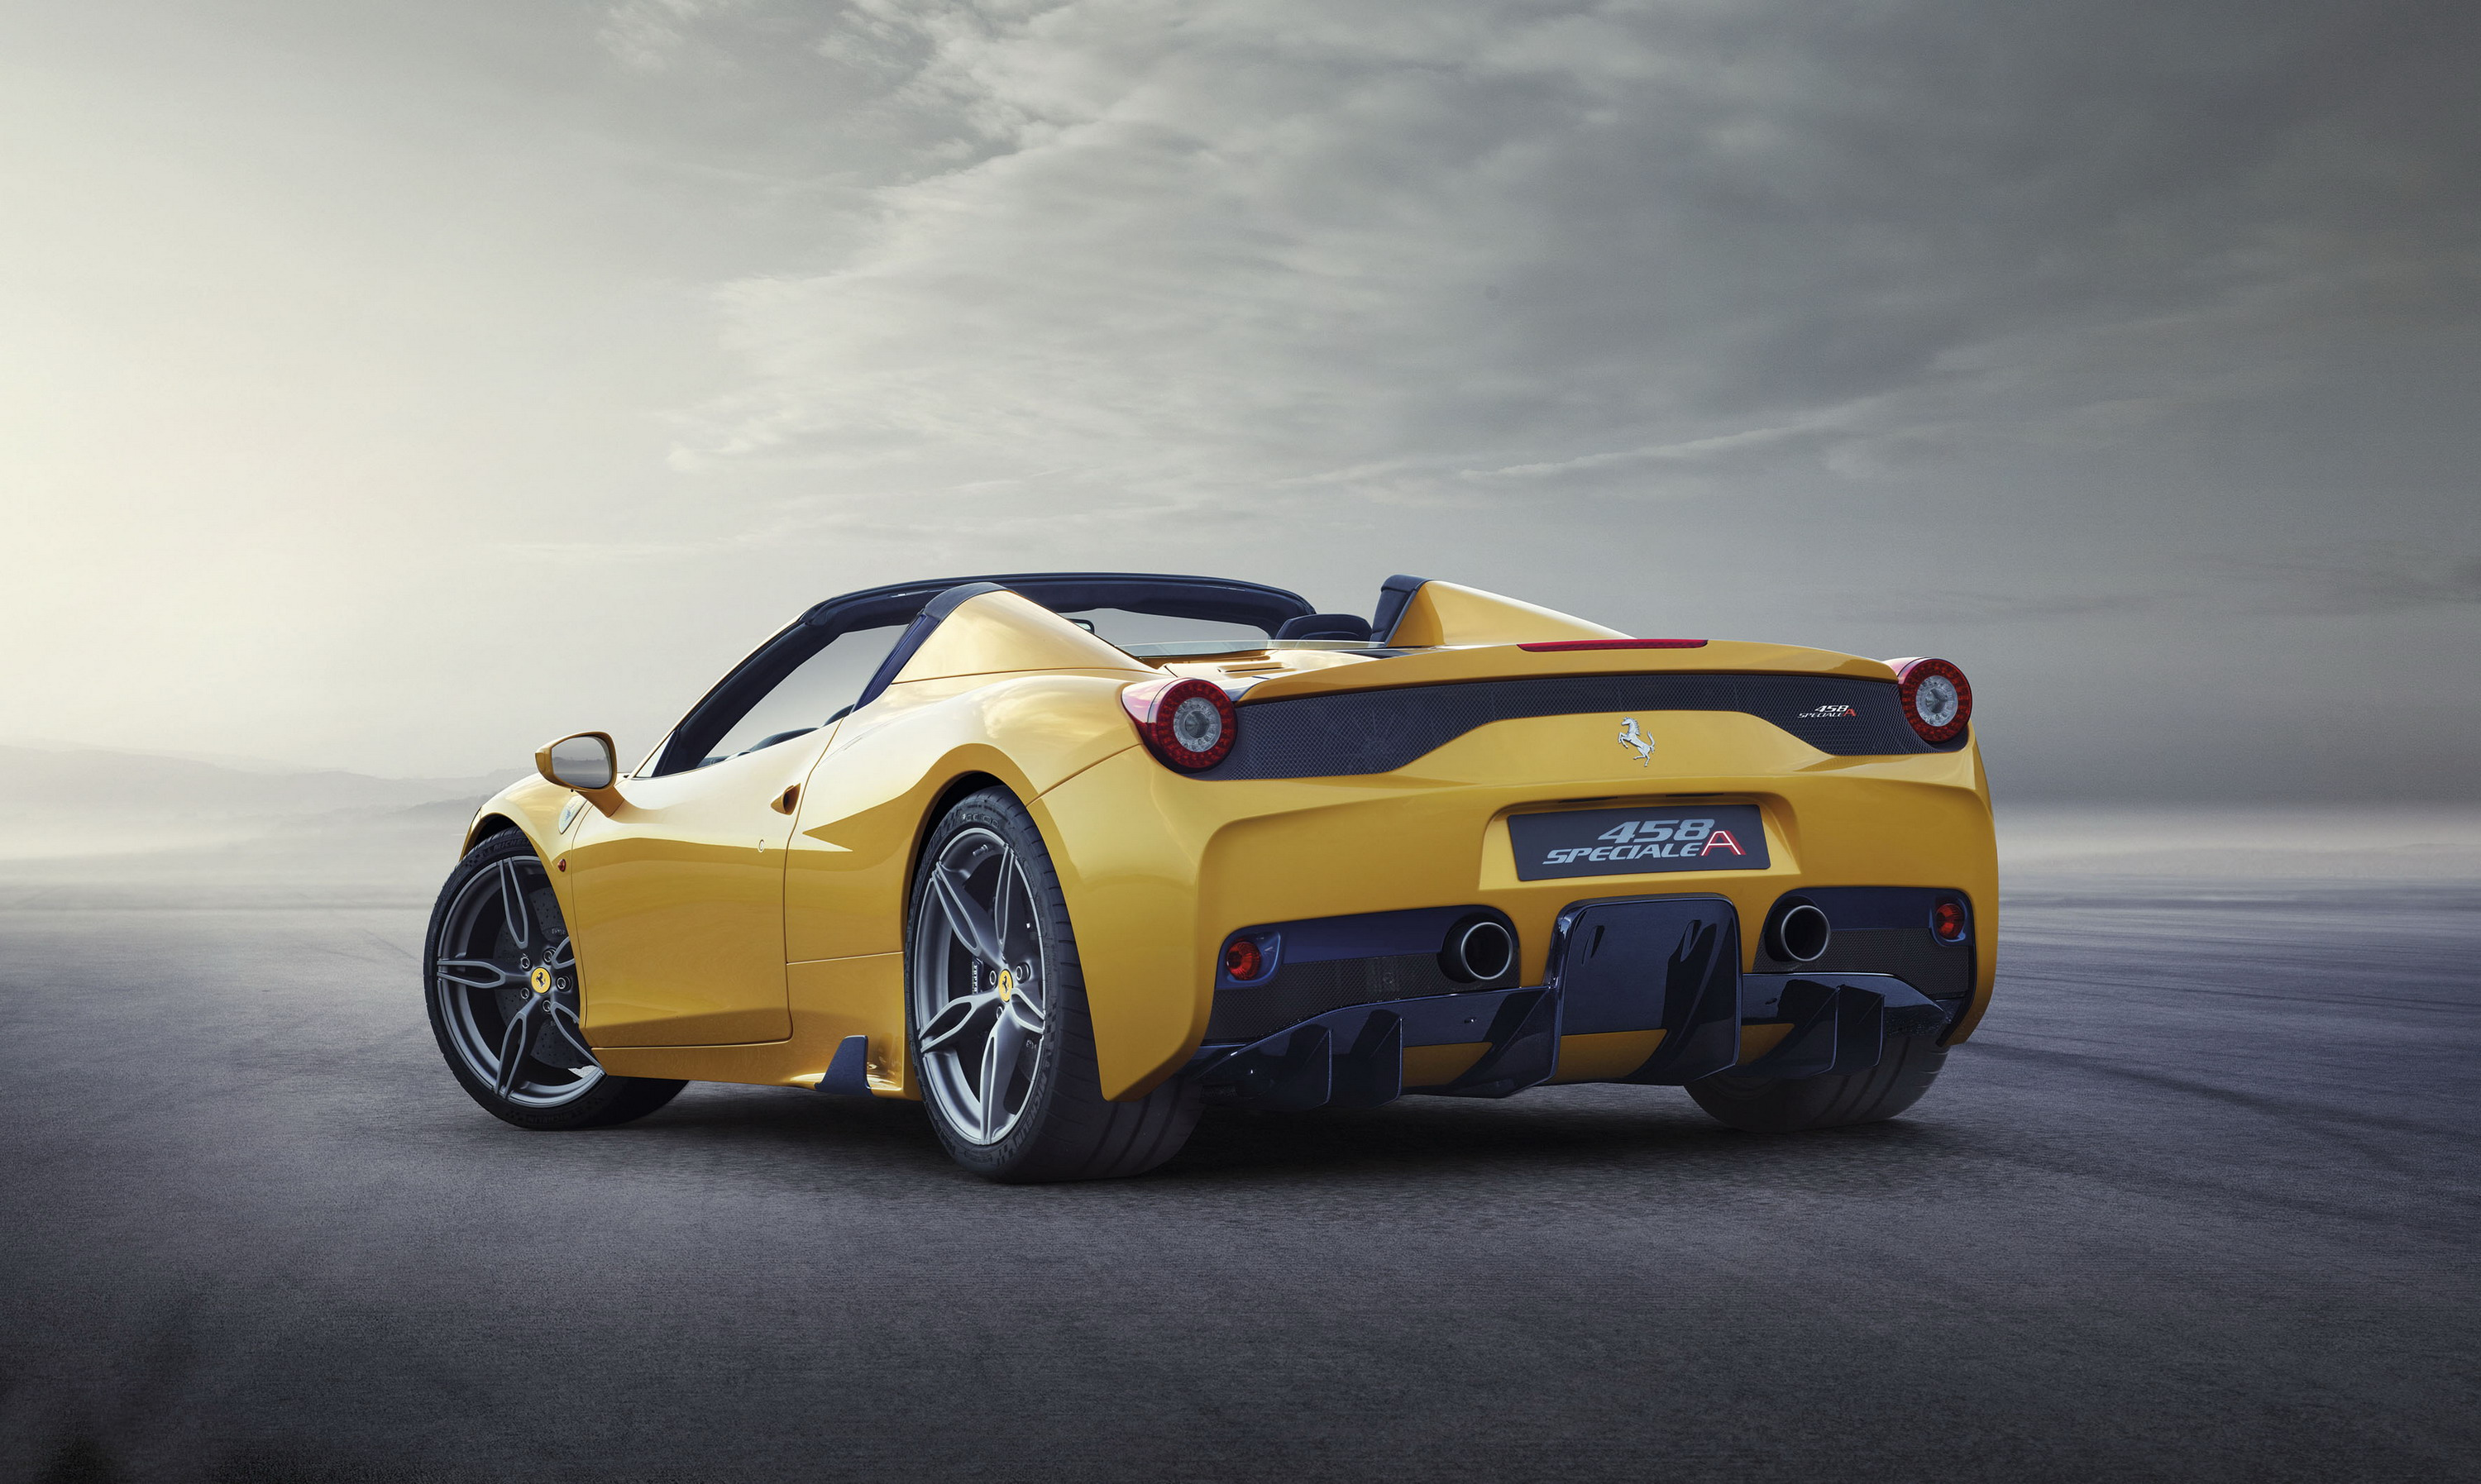 2015 ferrari 458 speciale a review - top speed